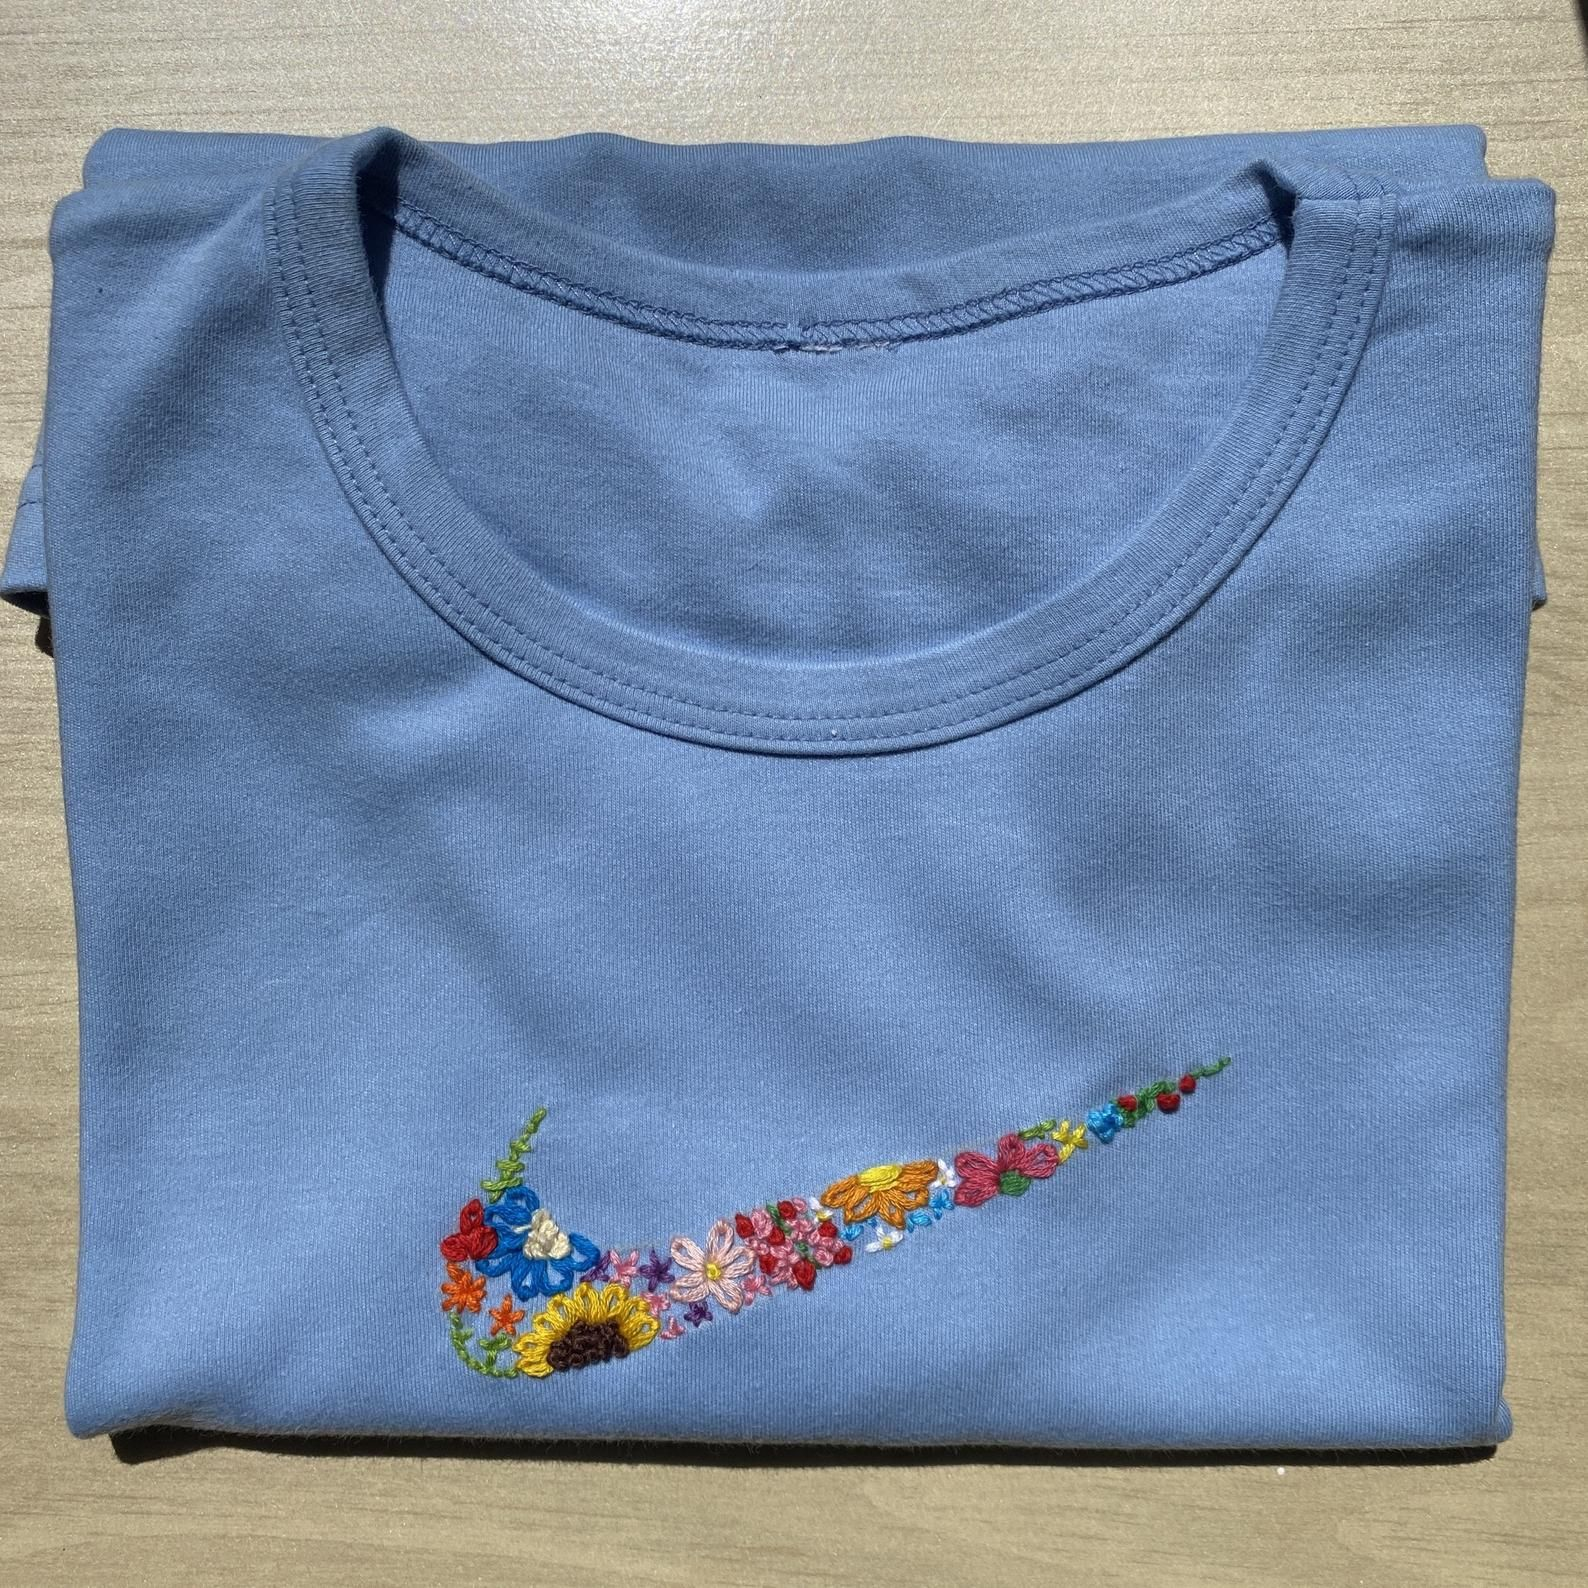 Embroidered Floral Nike Shirt | Diy embroidery shirt ...